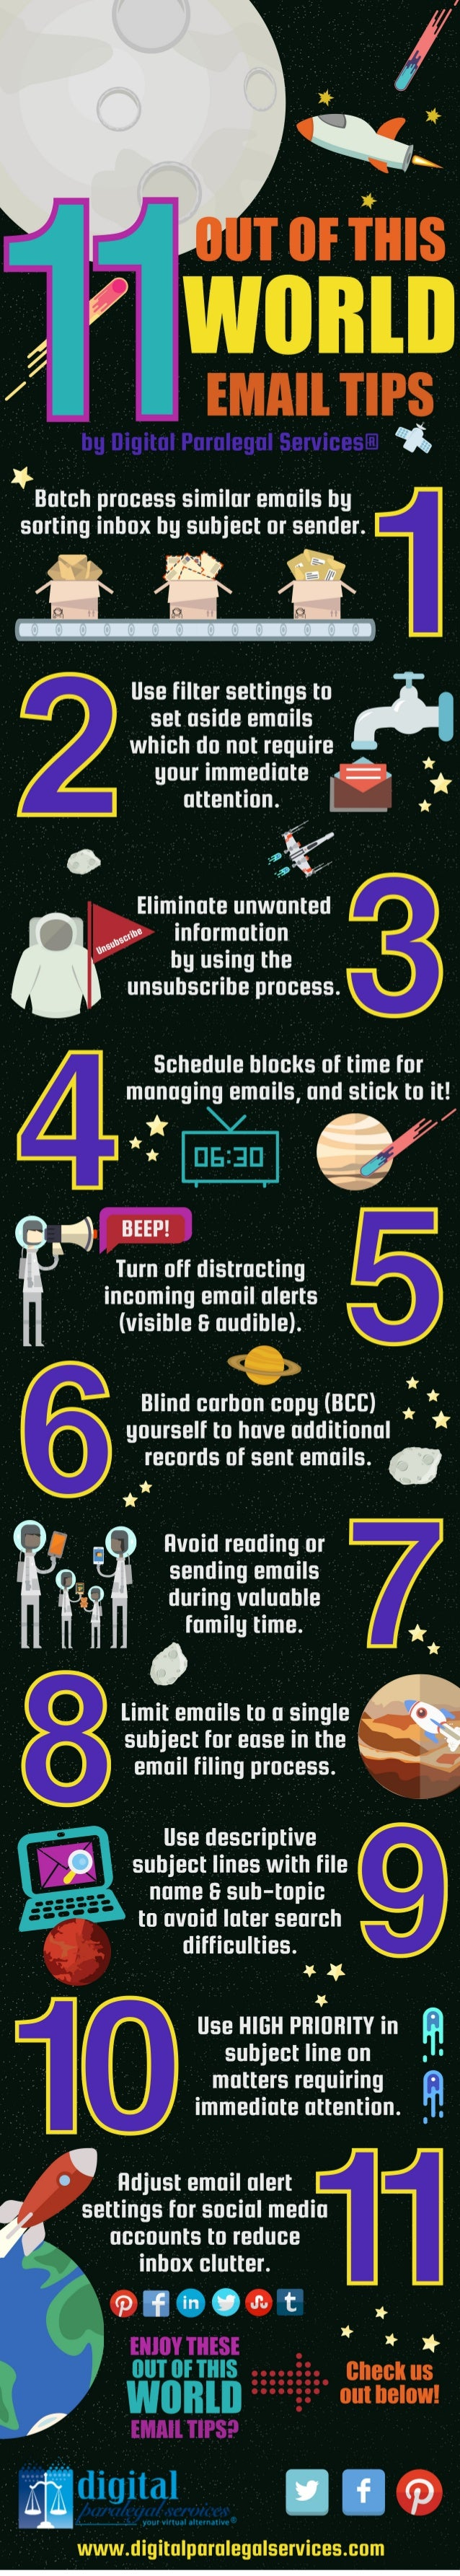 11 Out of this World Email Tips